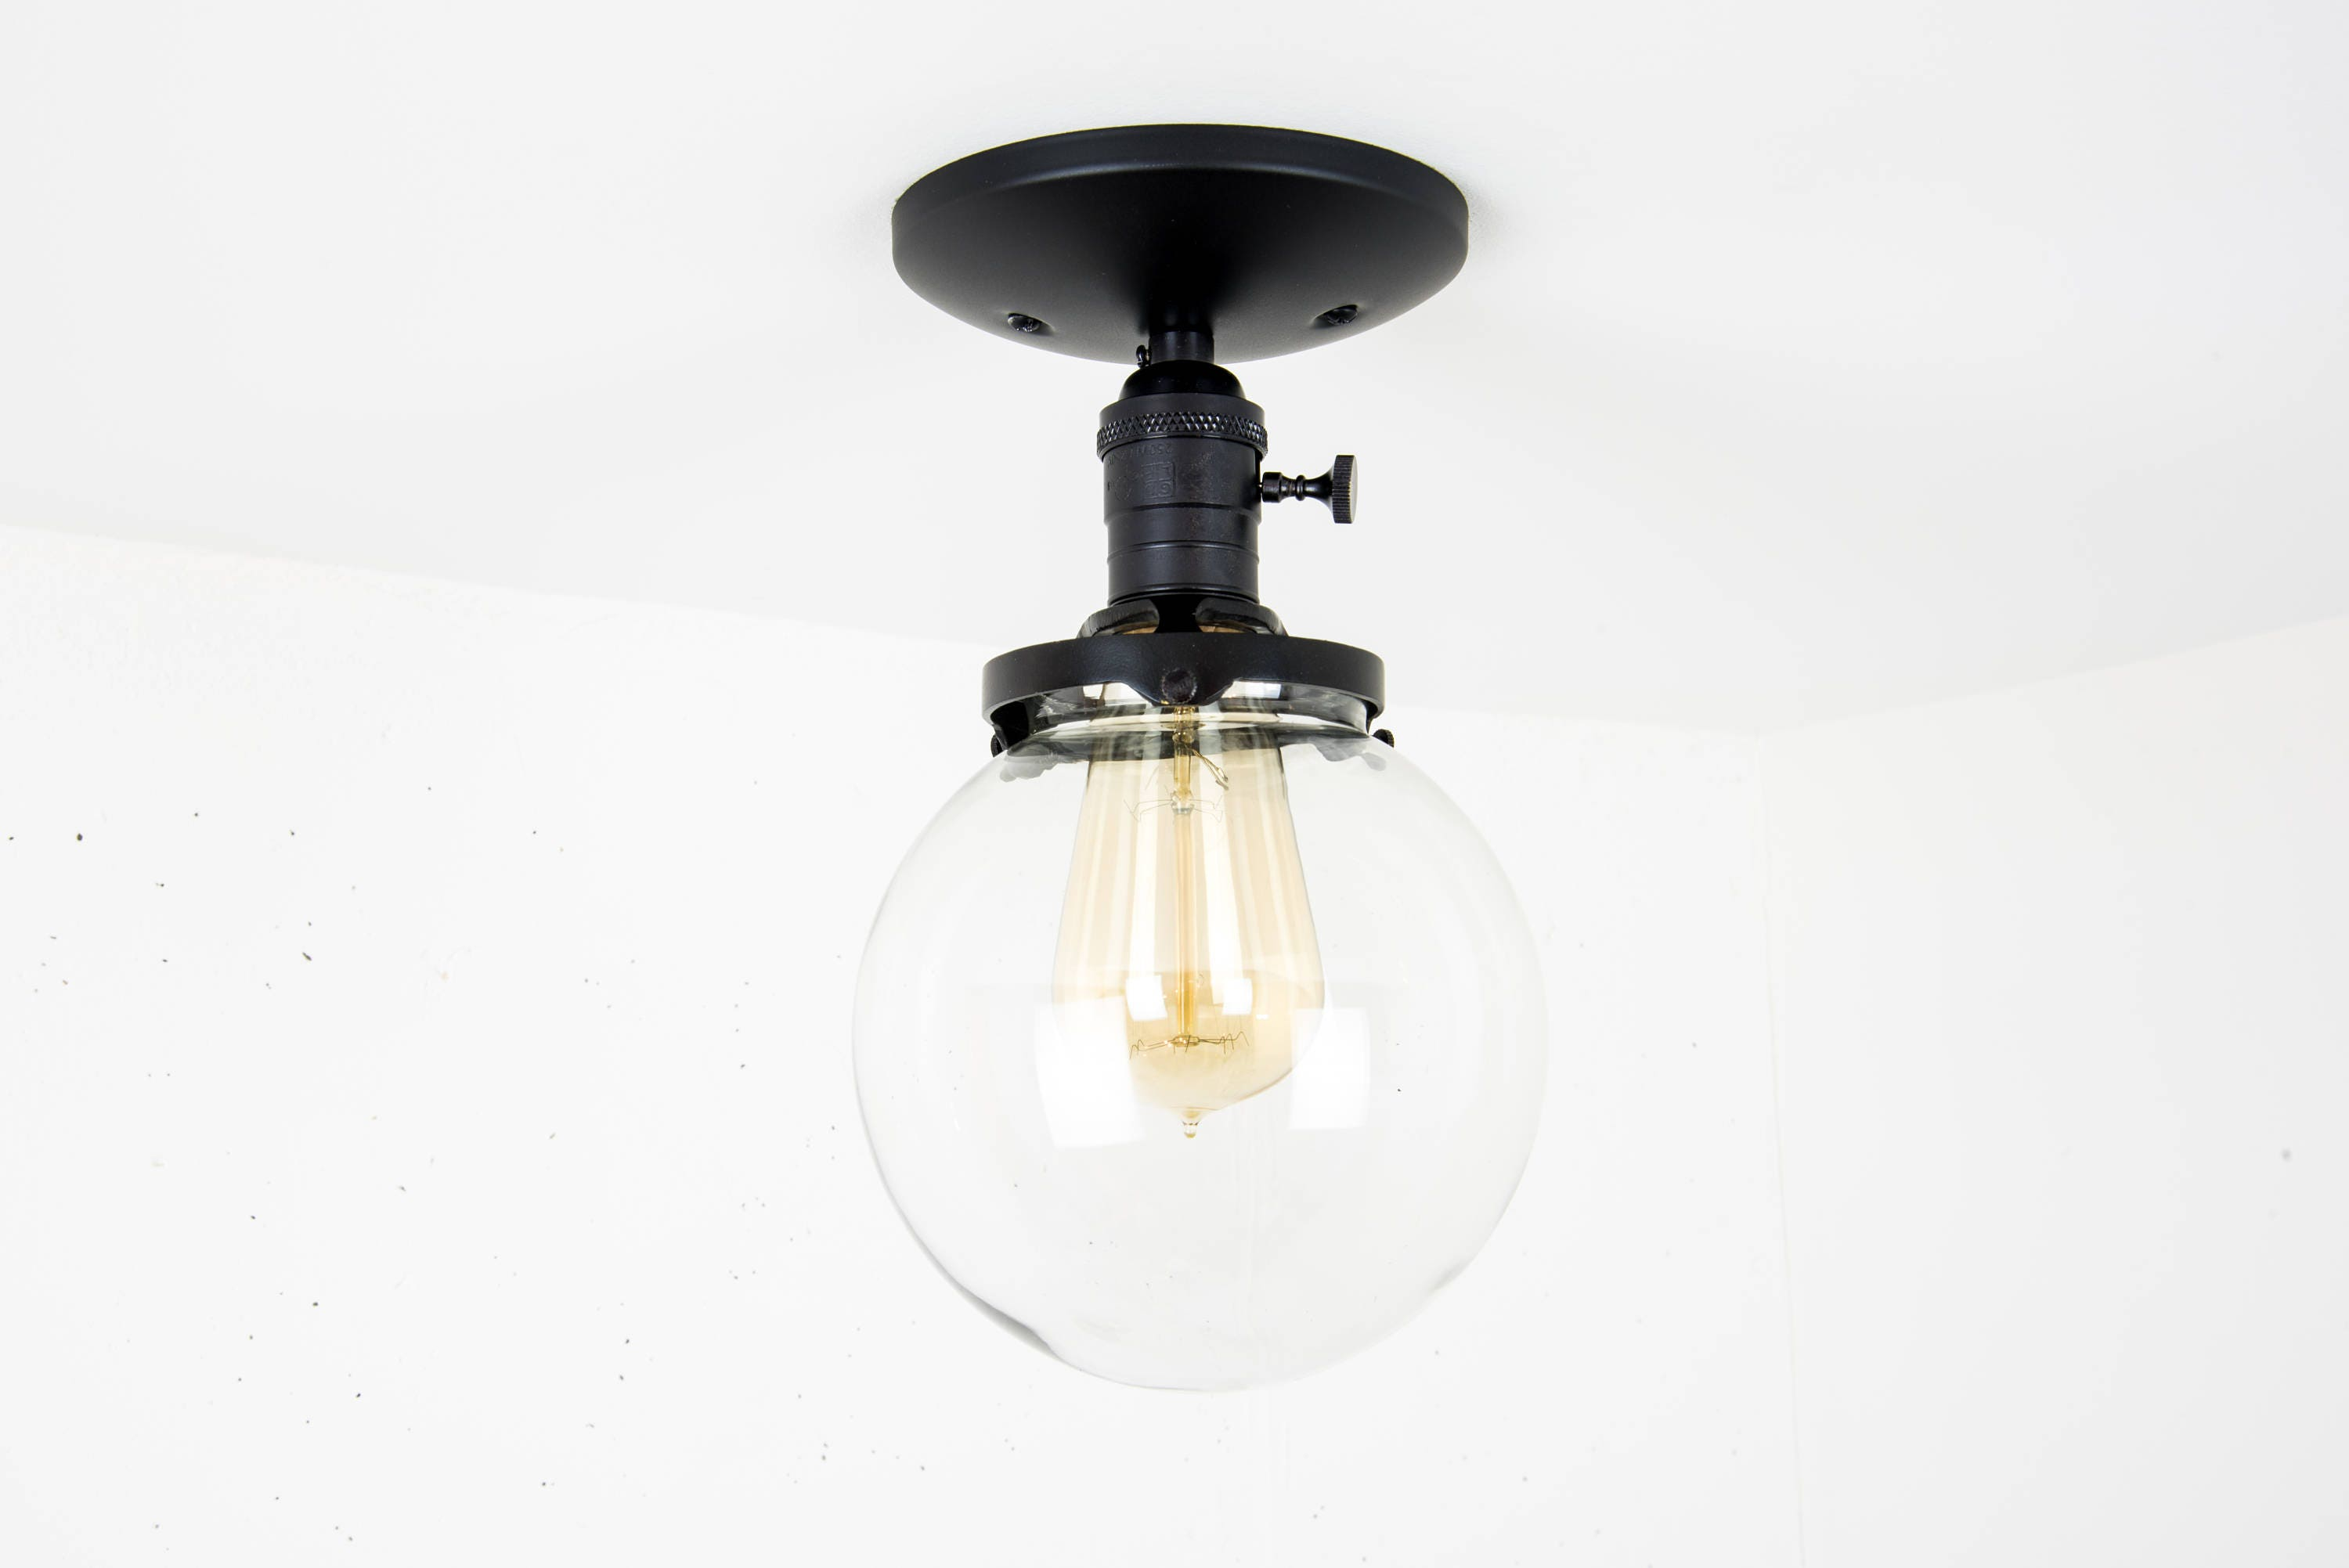 Globe ceiling light black light fixture ceiling mounted flush globe ceiling light black light fixture ceiling mounted flush mount glass globe light modern ceiling light semi flush mount lamp mozeypictures Image collections